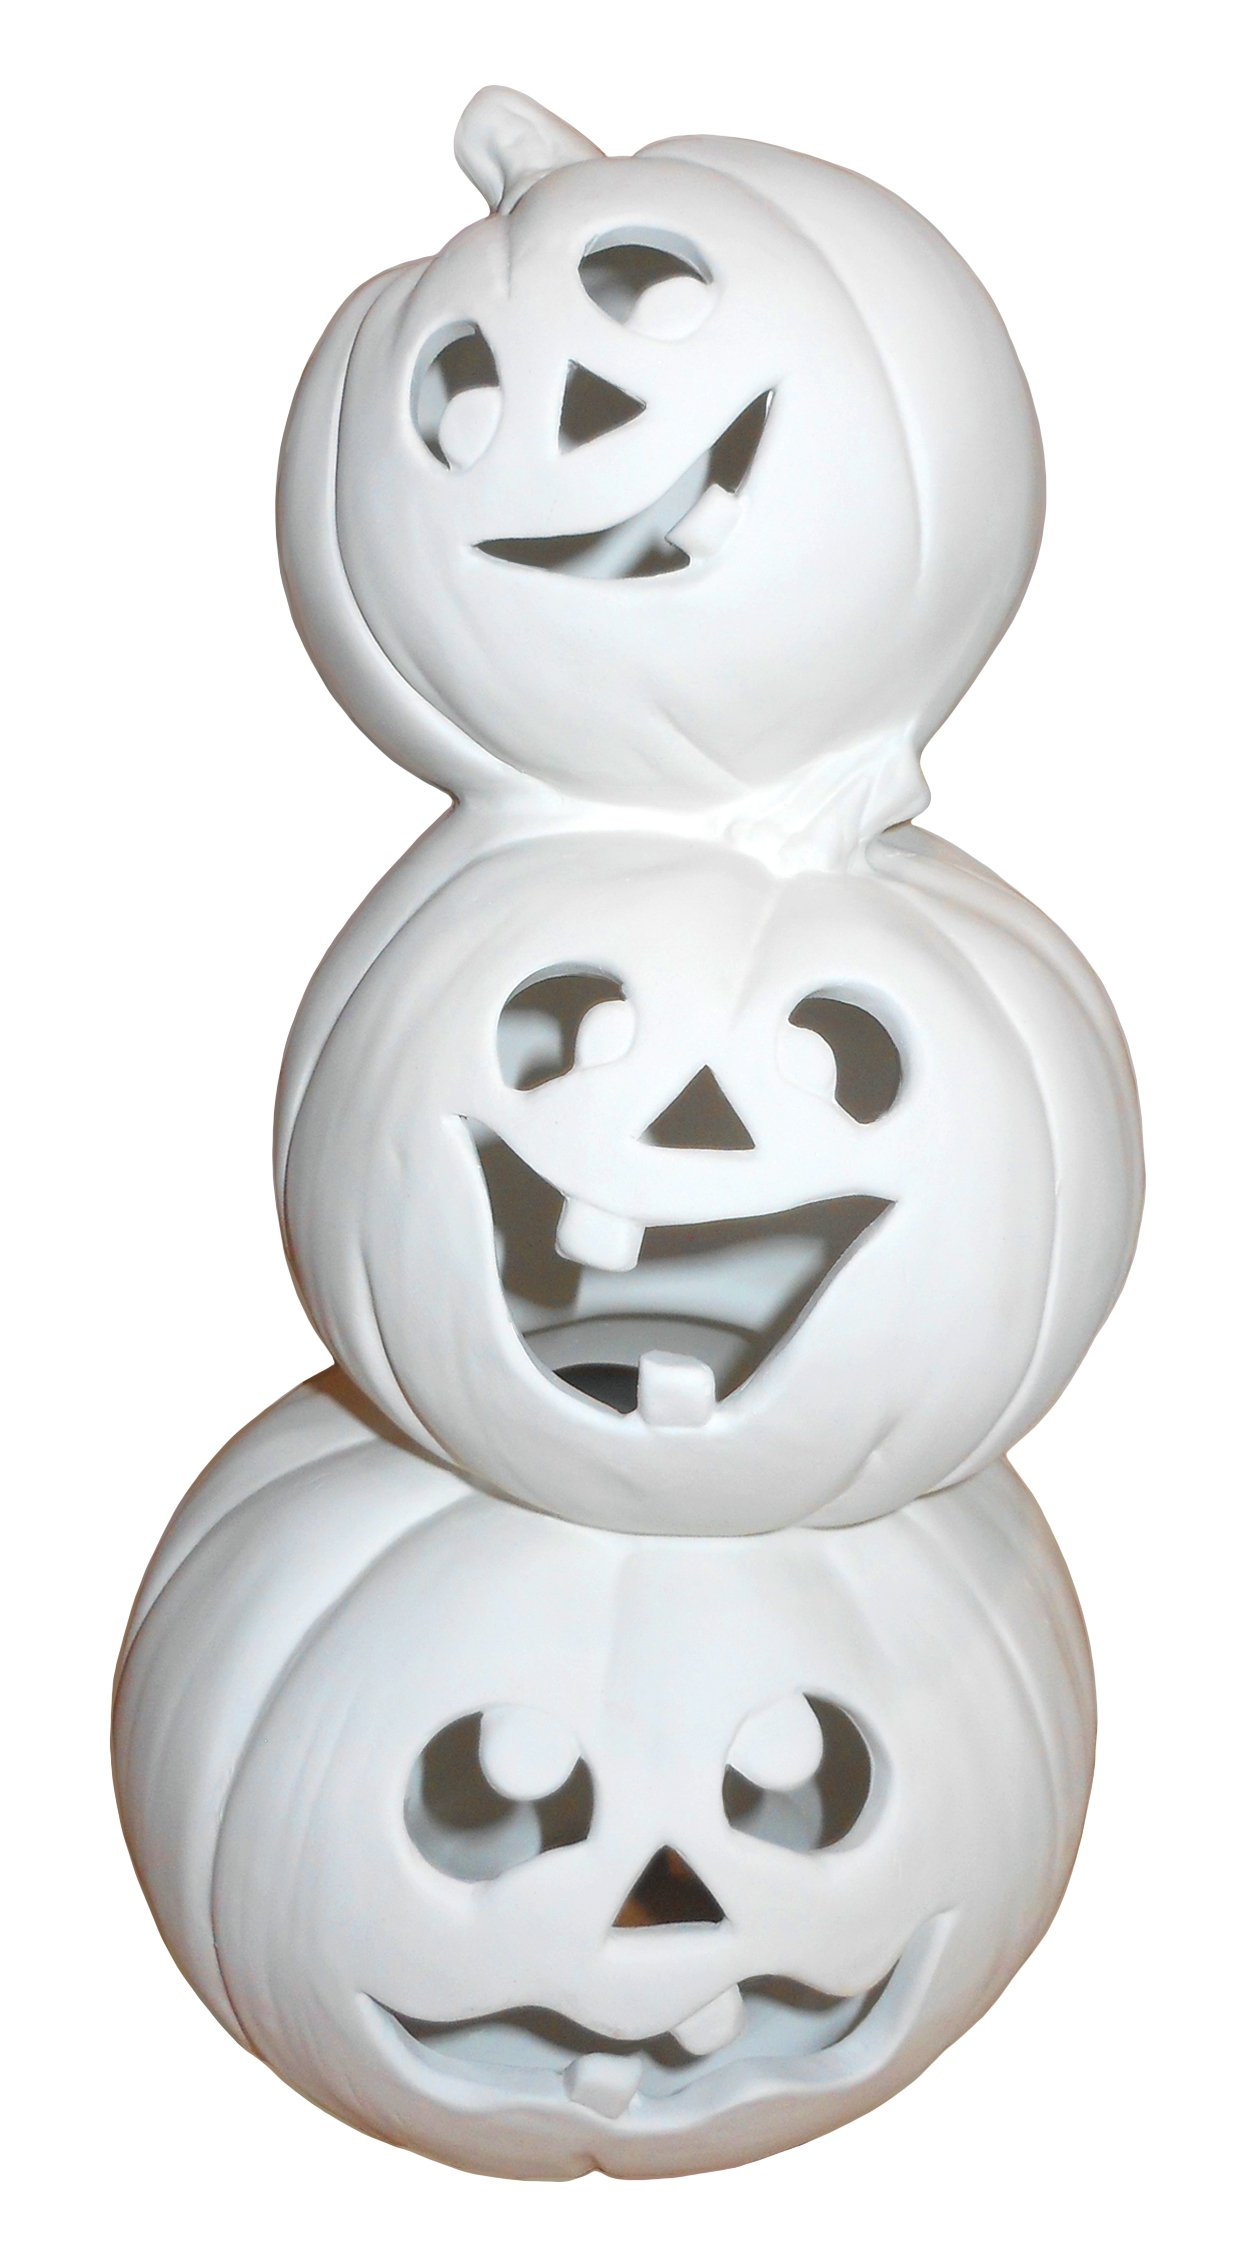 Jack-O-Stack Light up Jack-O-Lanterns - Paint Your Own Halloween Ceramic Keepsake